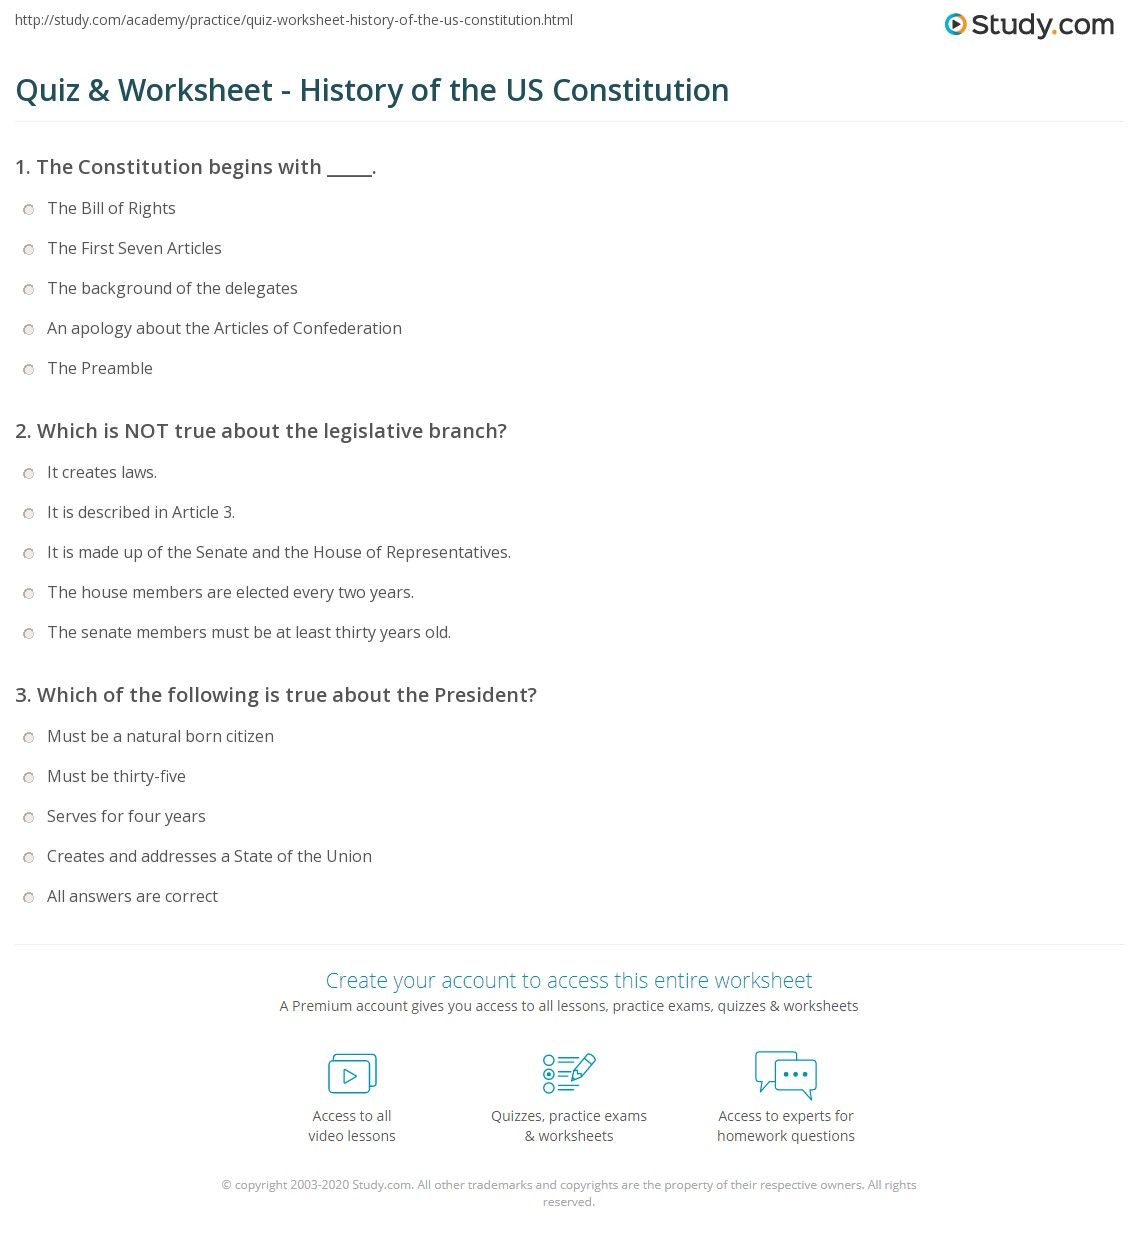 Worksheet About The Constitution